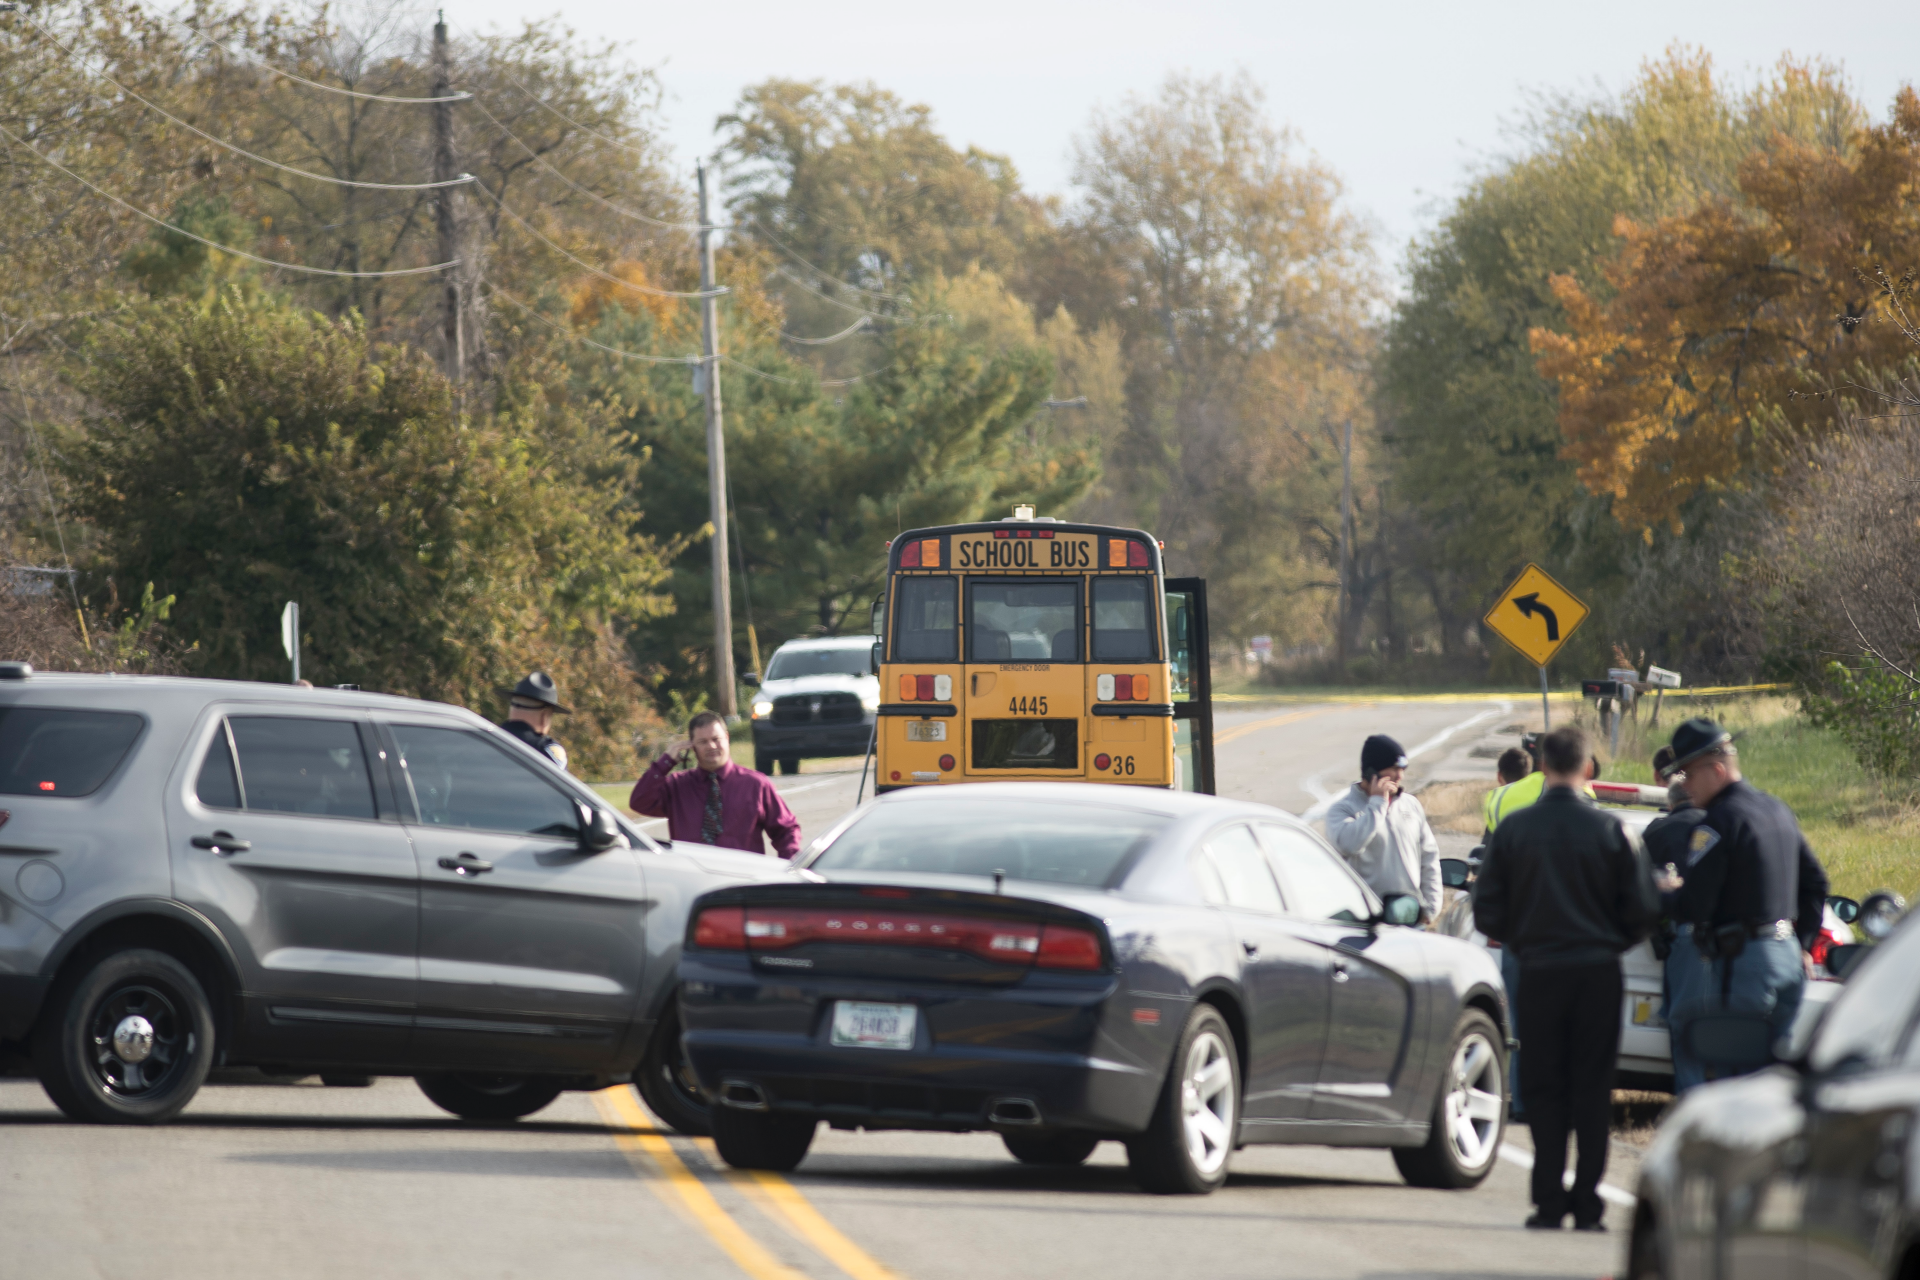 3 Siblings Struck Killed By Truck At Bus Stop In Indiana